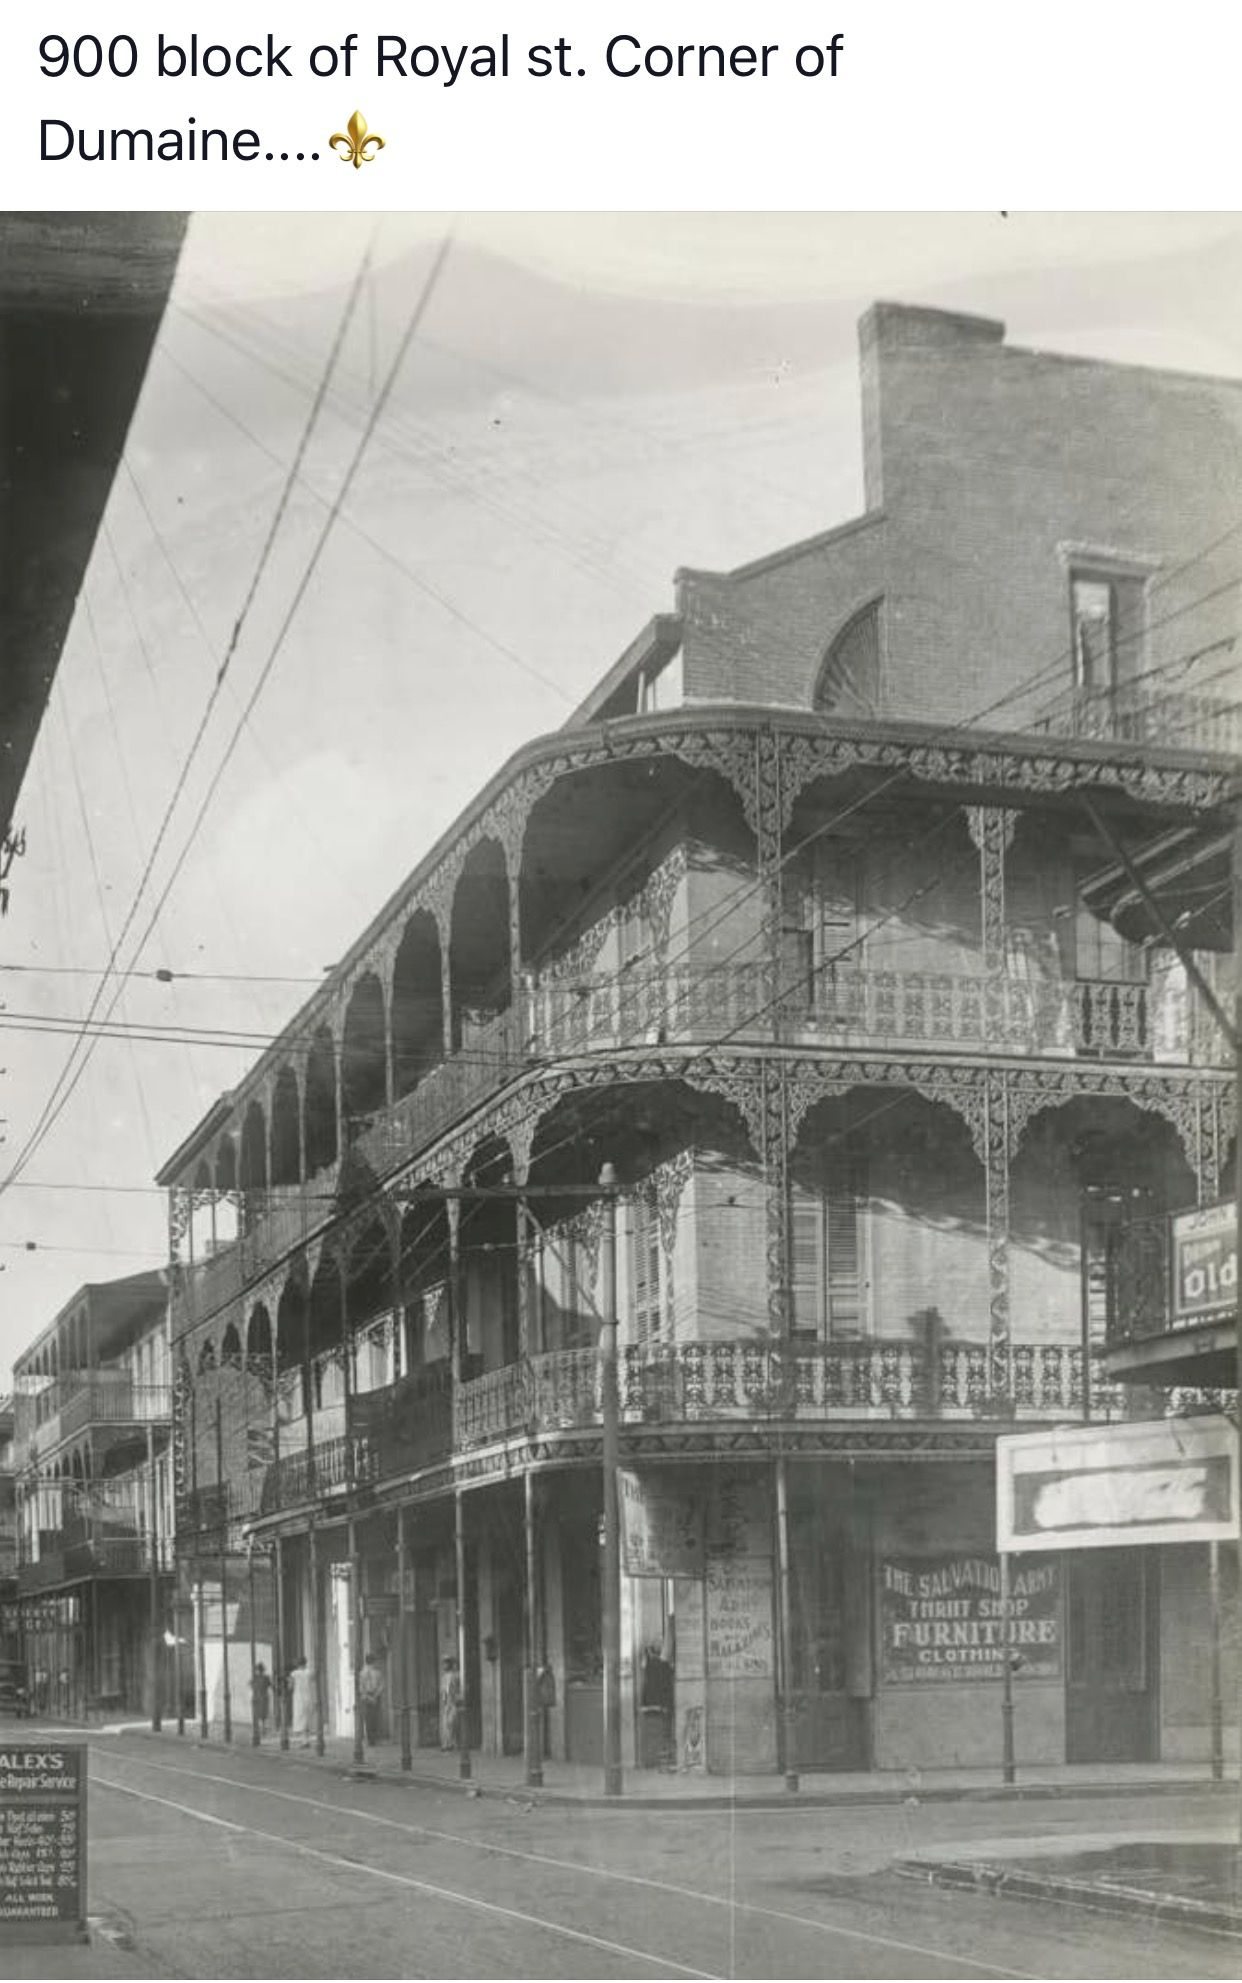 Pin by Tricia R on New Orleans New orleans history, New